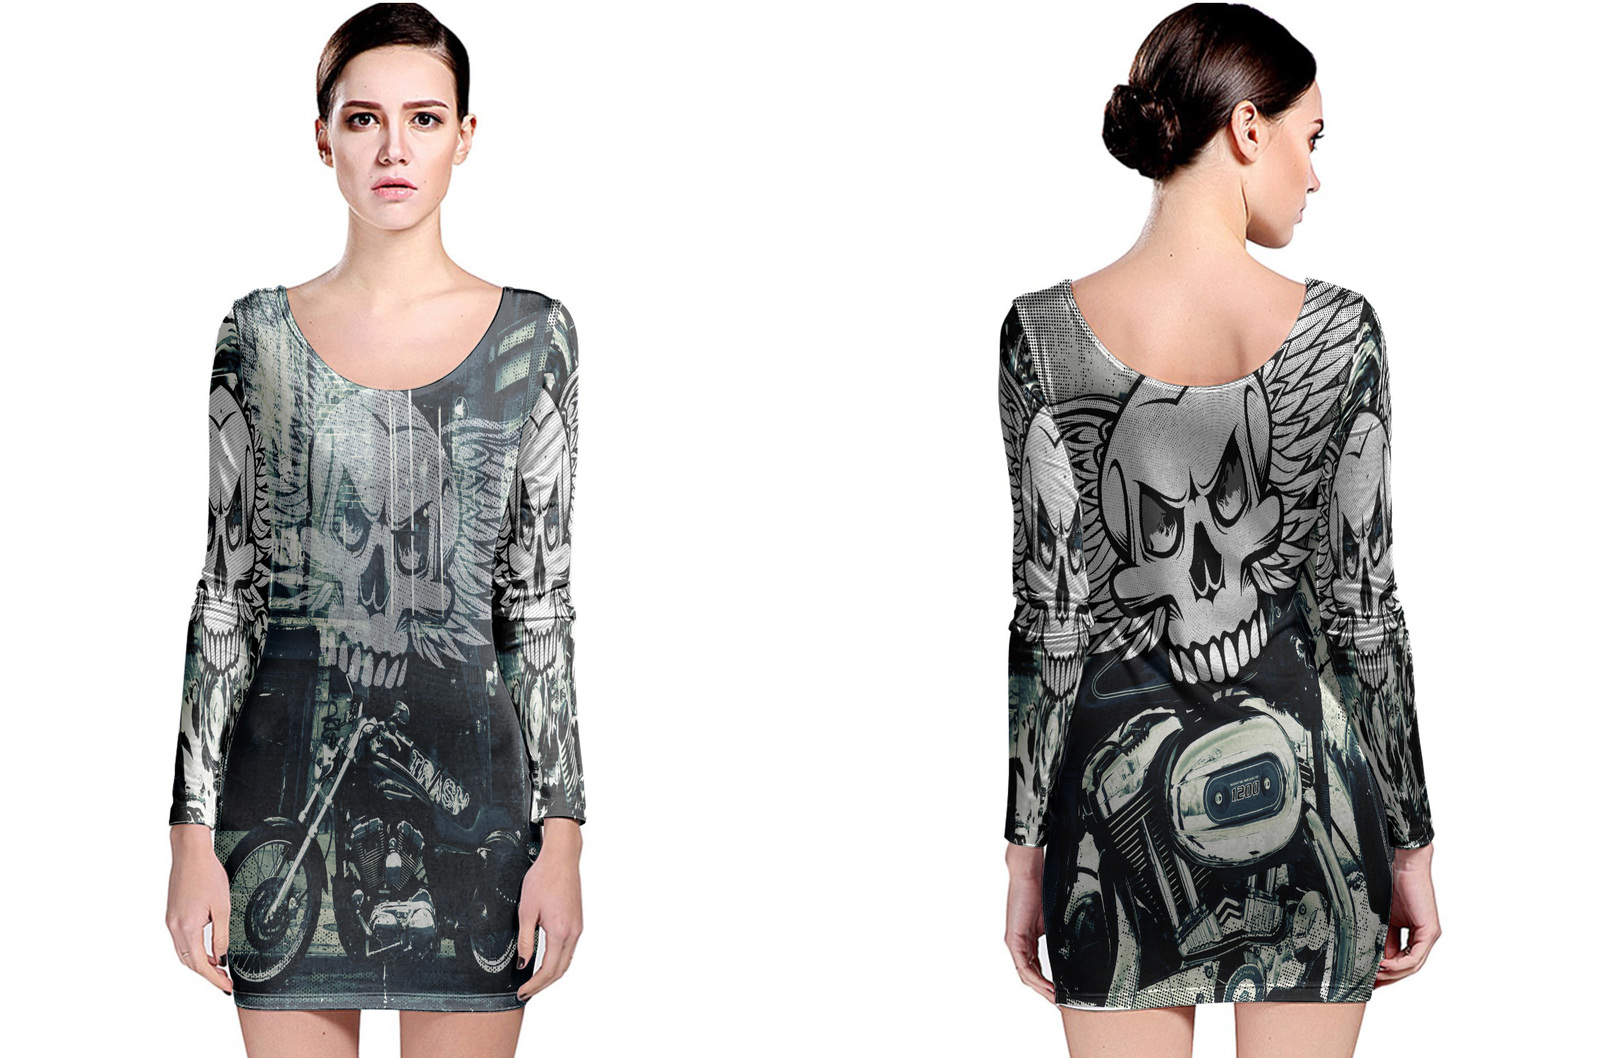 Primary image for Biker Collection #1 Women's Long Sleeve Bodycon Dress